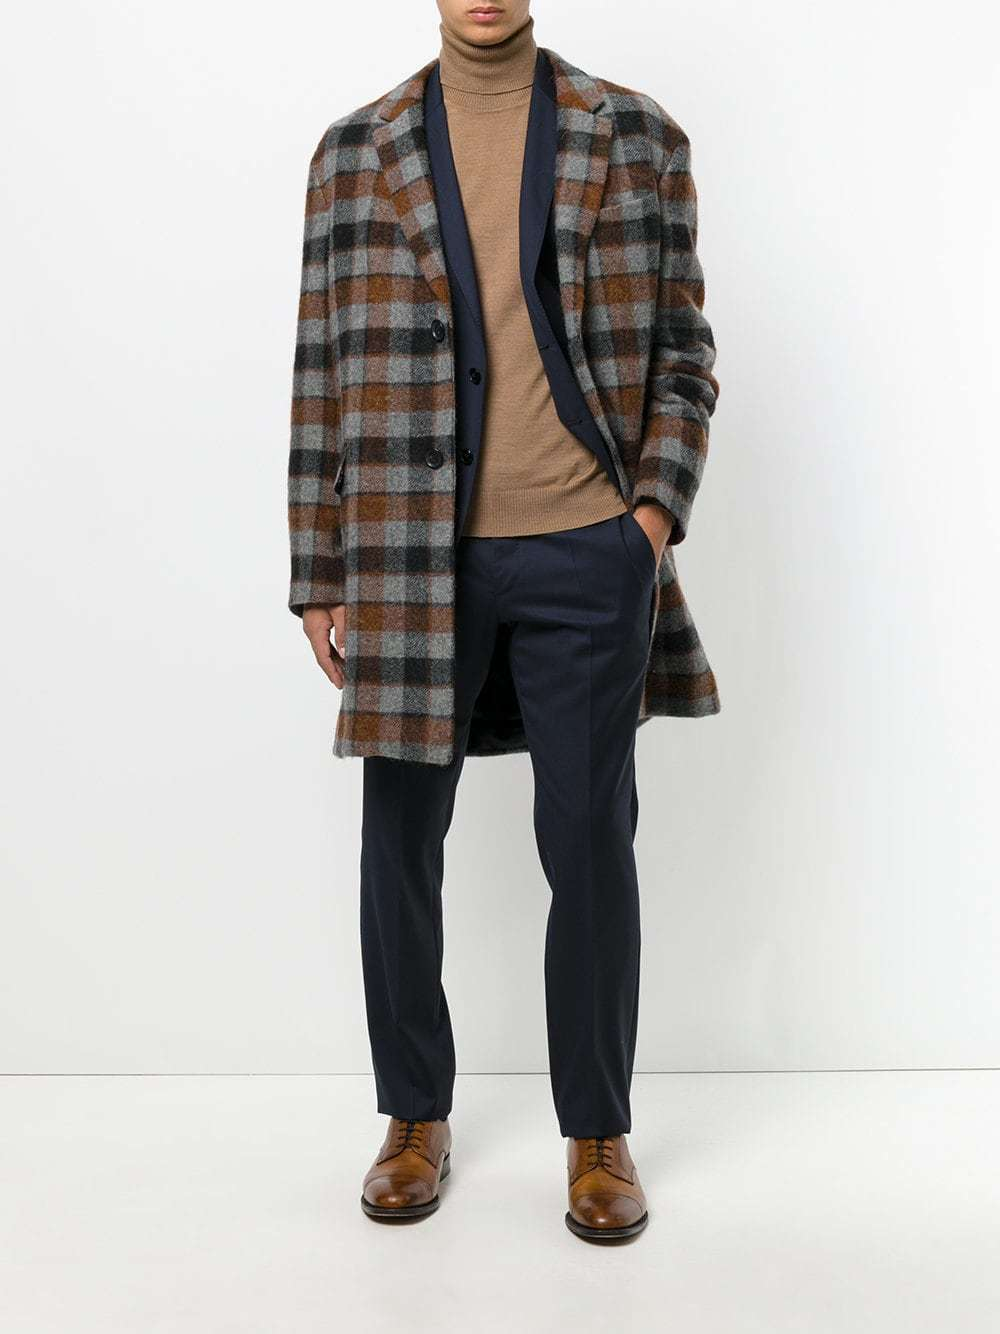 Lanvin Checked Coat